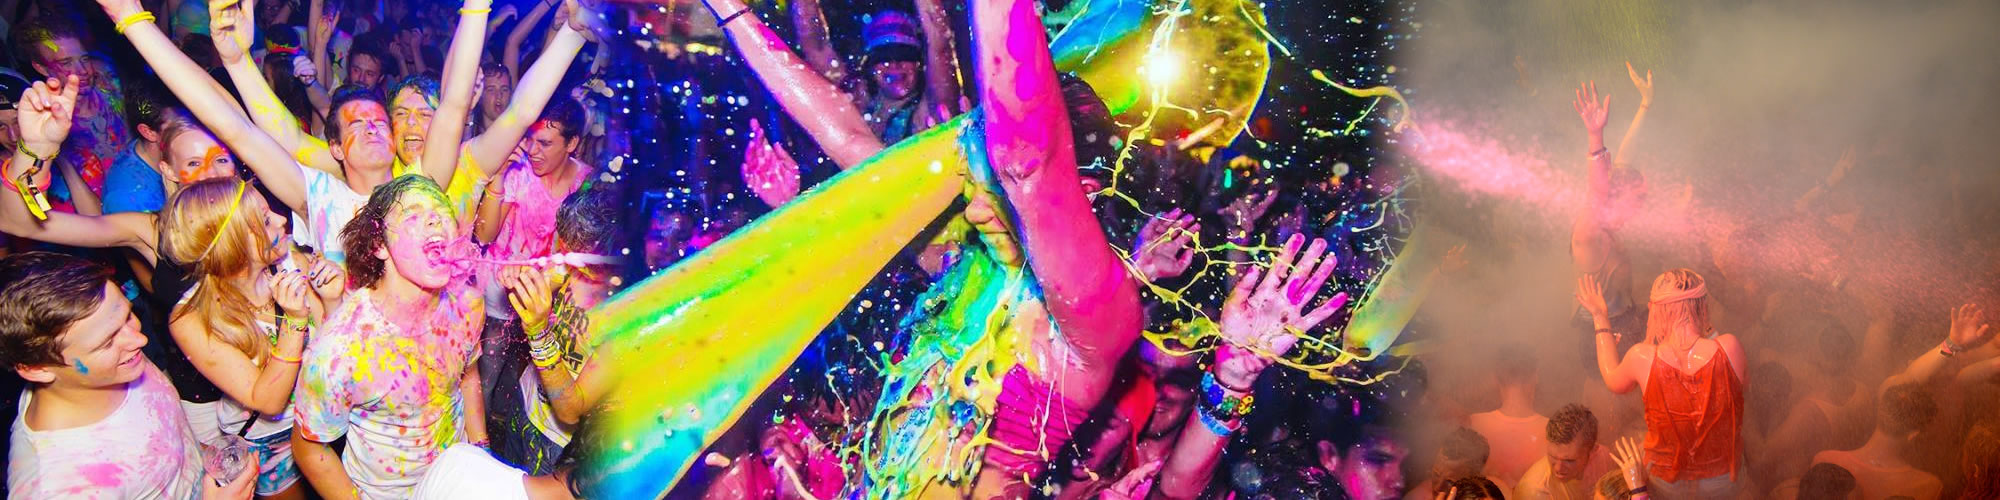 banner-paint-party